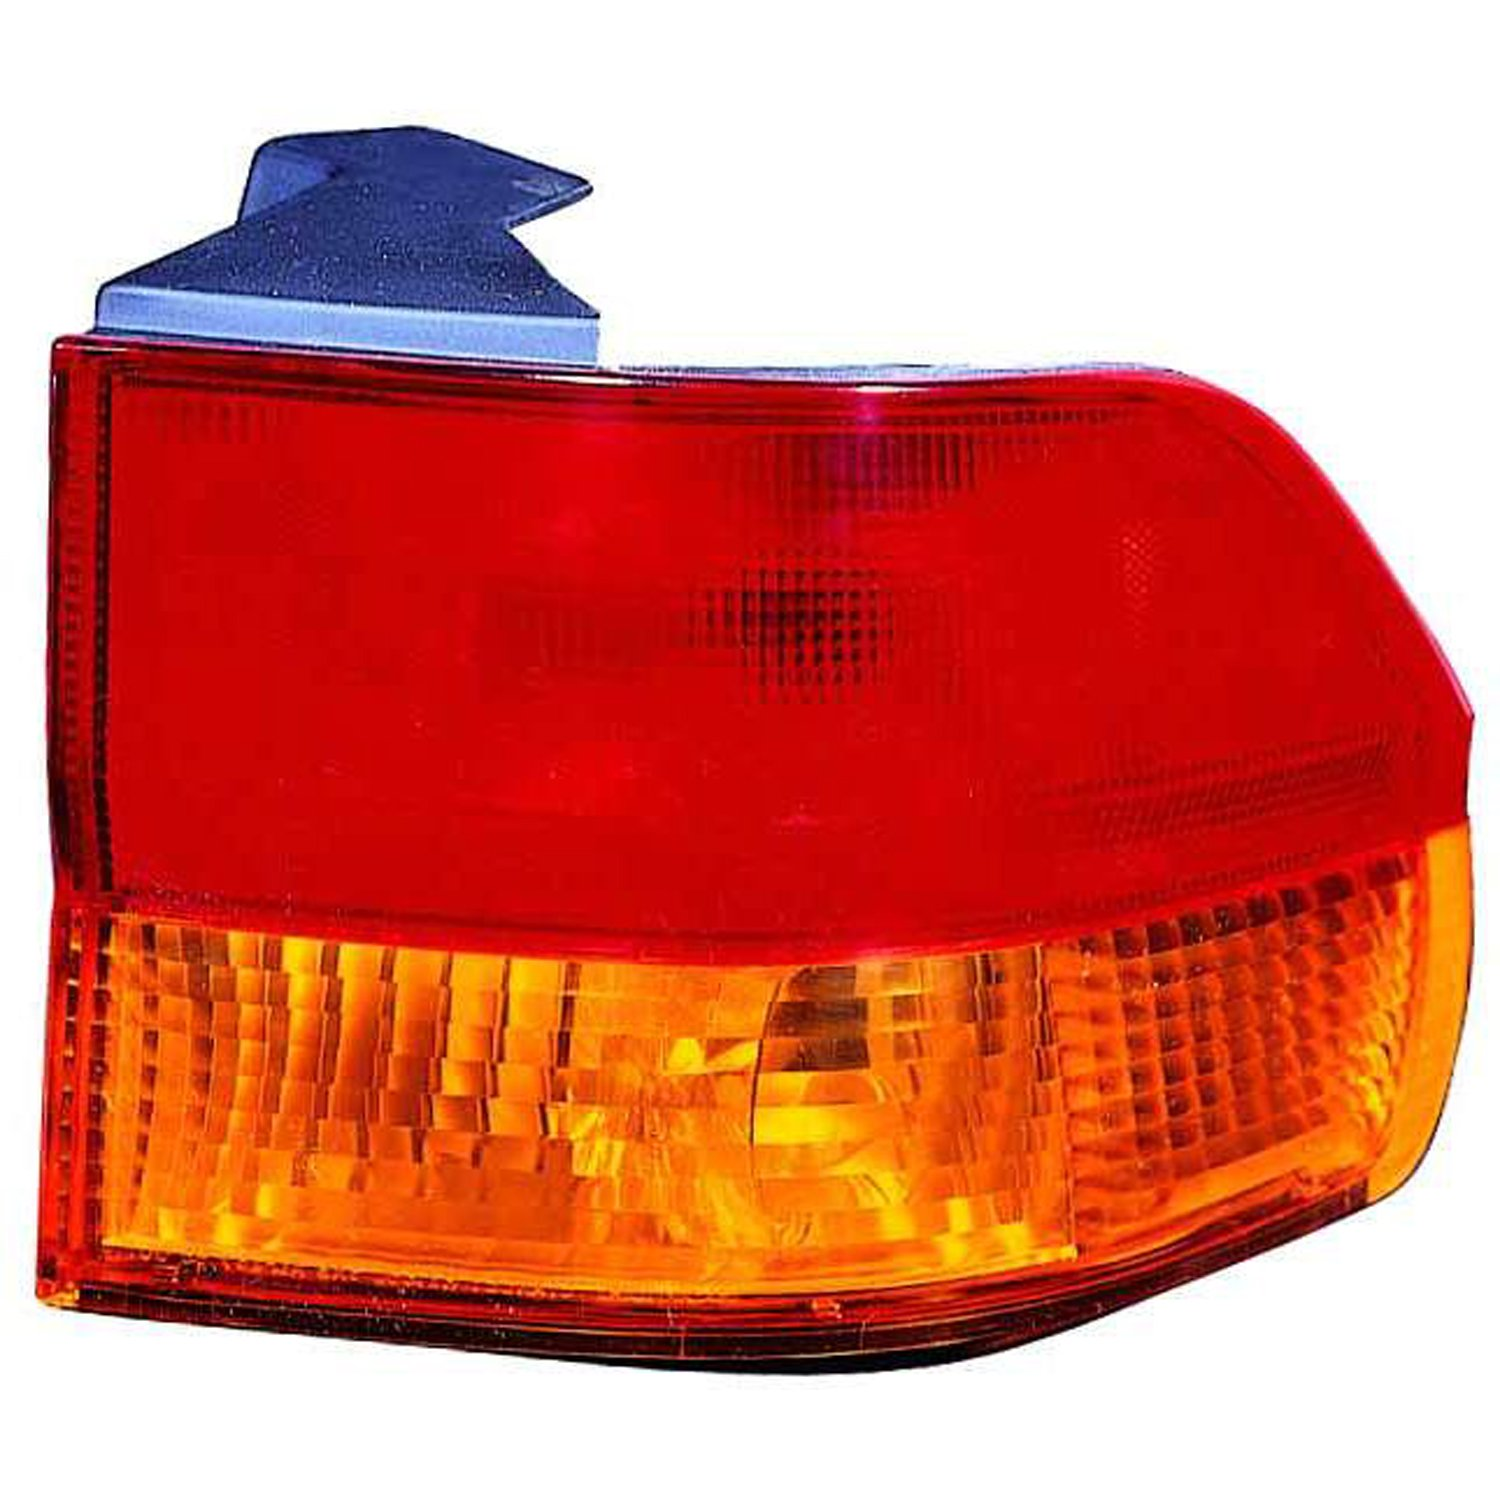 OE Replacement Tail Light HONDA ODYSSEY 2002-2004 Partslink HO2801158 Multiple Manufacturers HO2801158C